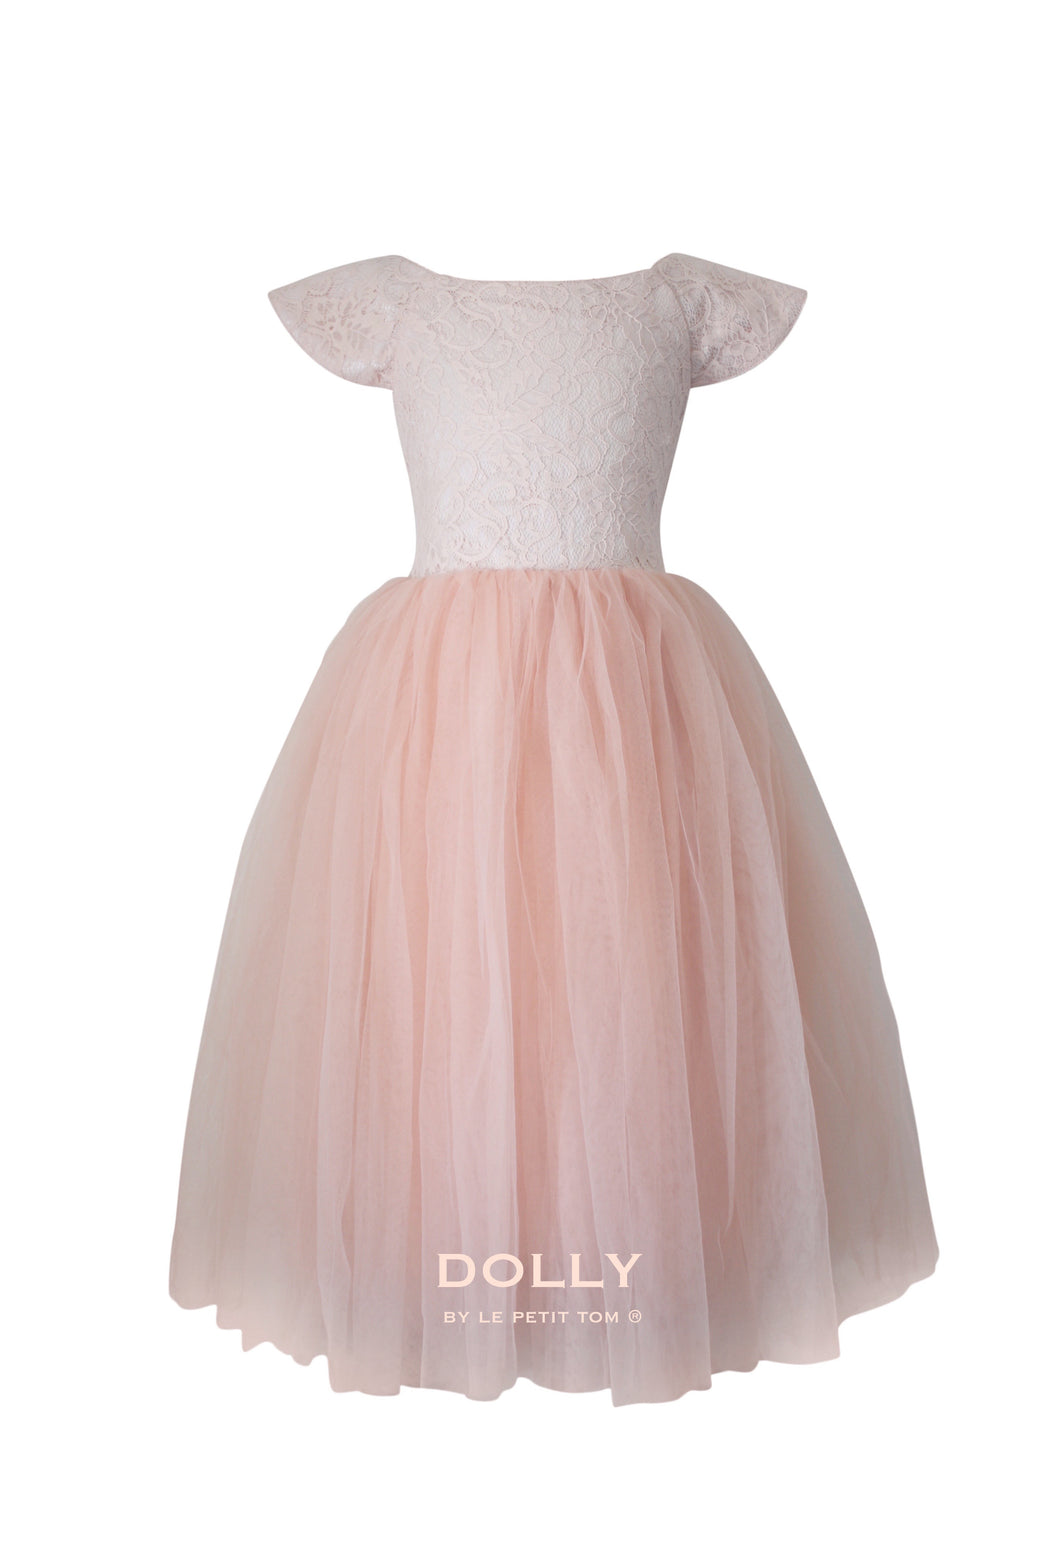 The Dreamy Dress | Dolly by Le Petit Tom